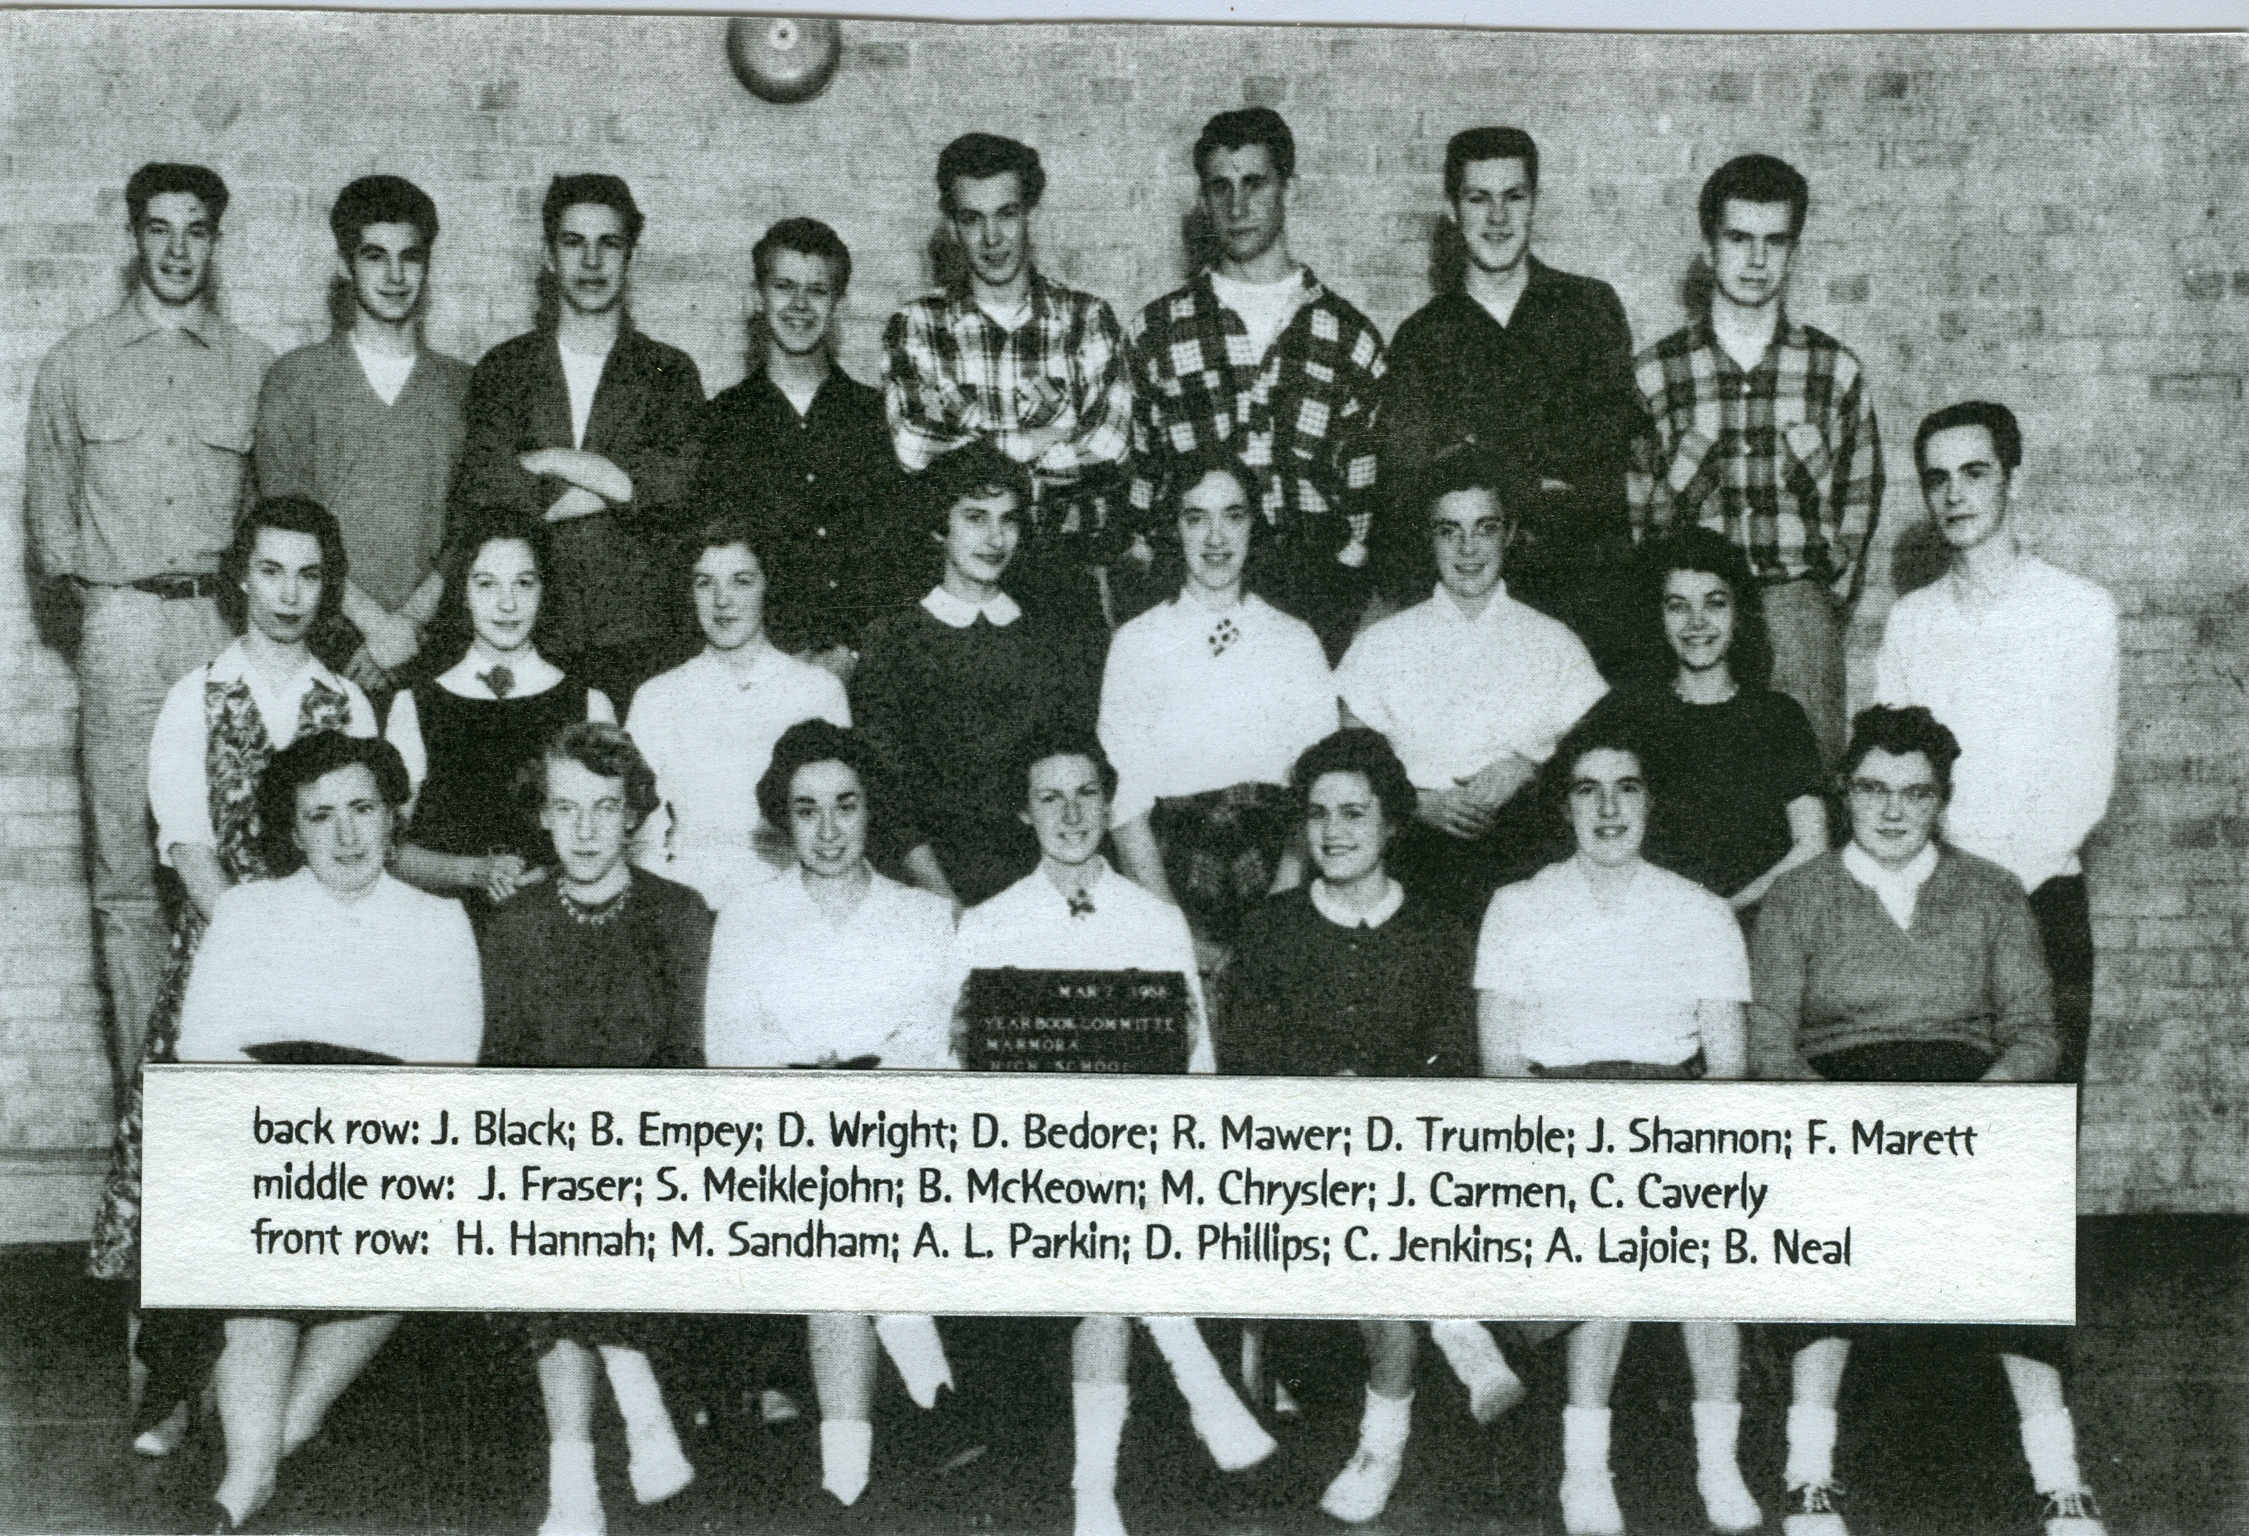 1968 Year Book Committe.jpg